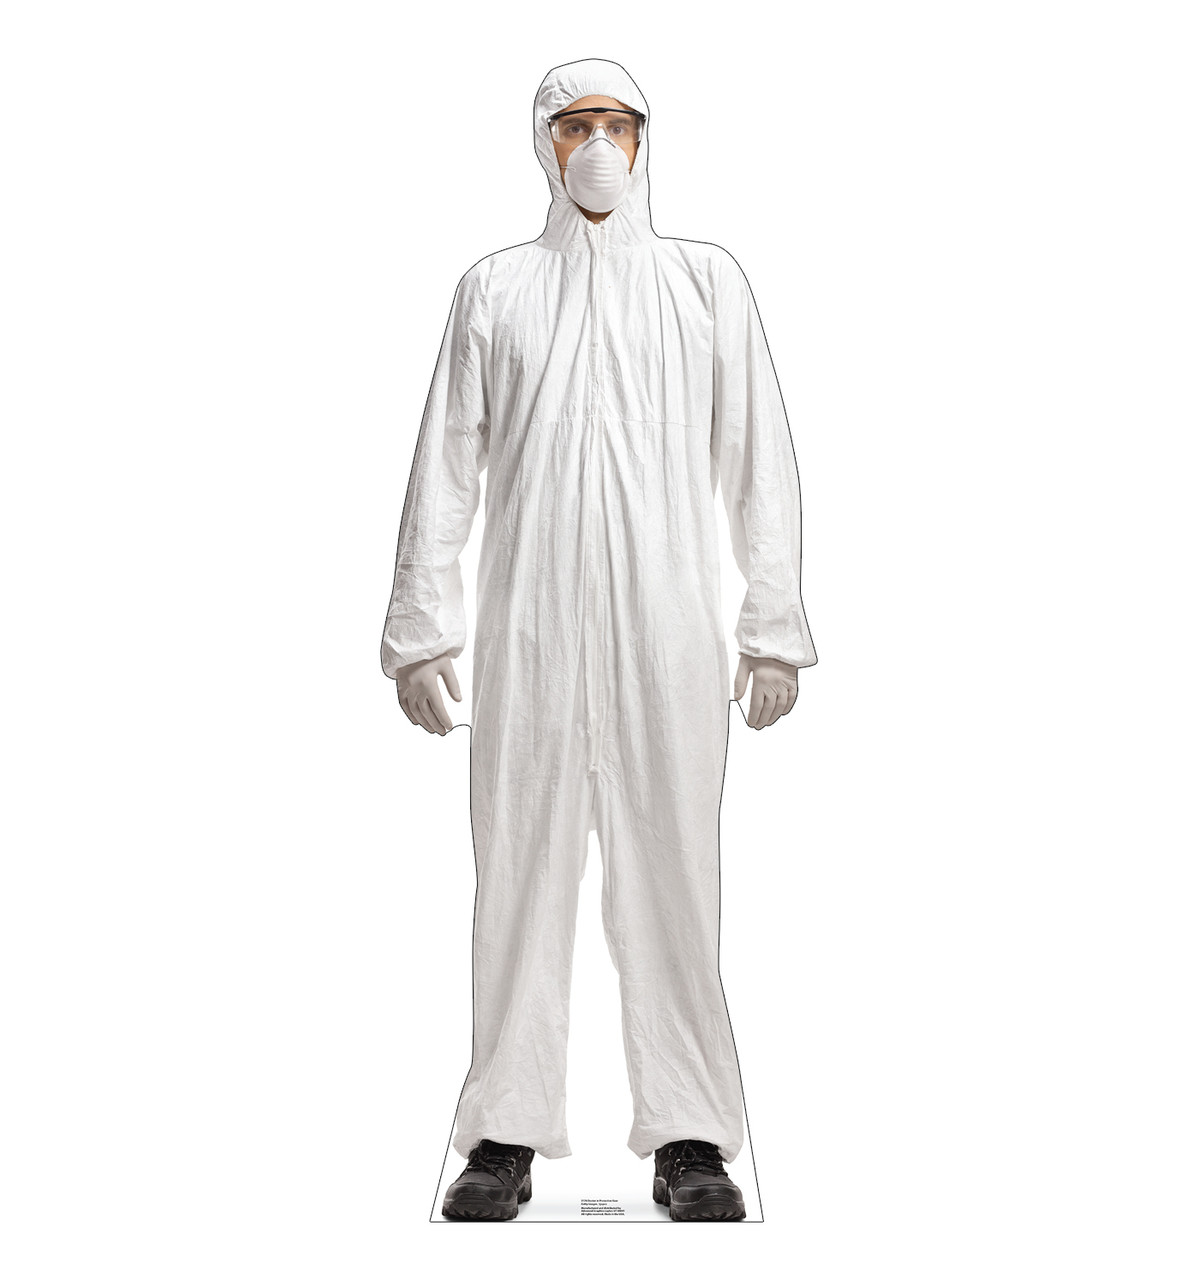 Life-size cardboard standee of a Doctor in Protective Gear.